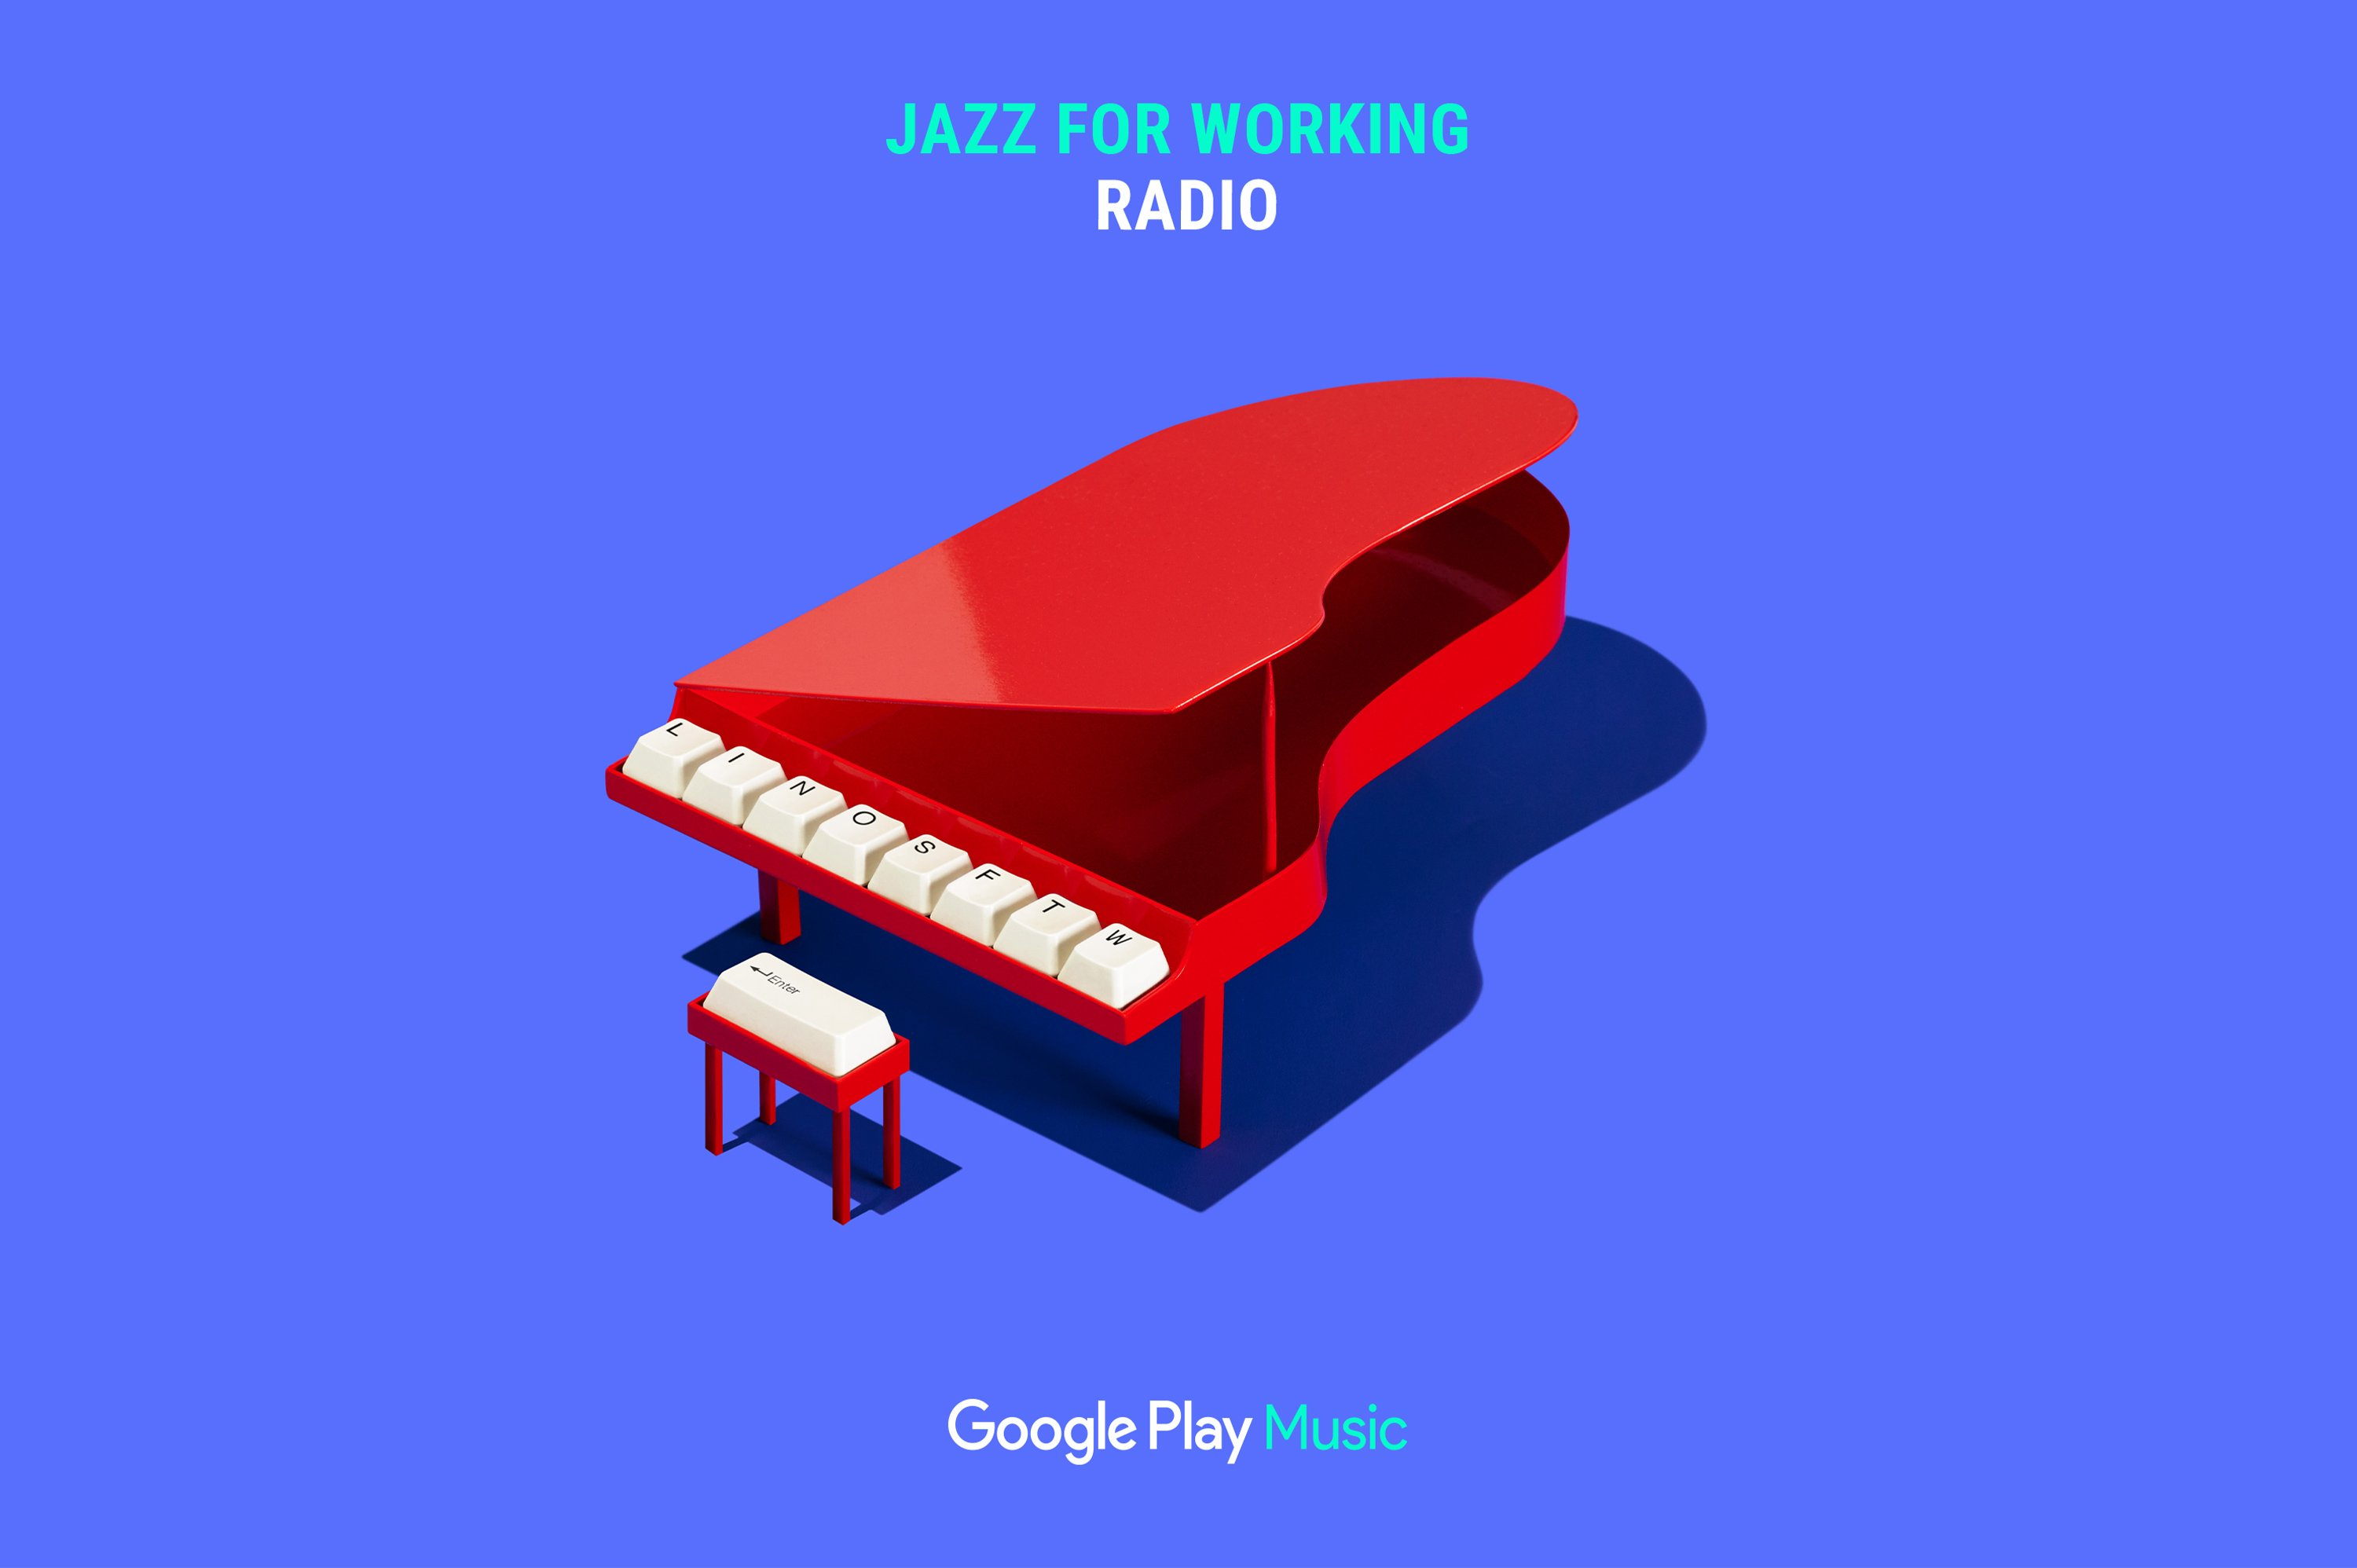 Google Play Music –Jazz for Working Radio ad featuring red grand piano with keyboard keys in place of piano keys. Campaign concept and Art Direction by RoAndCo